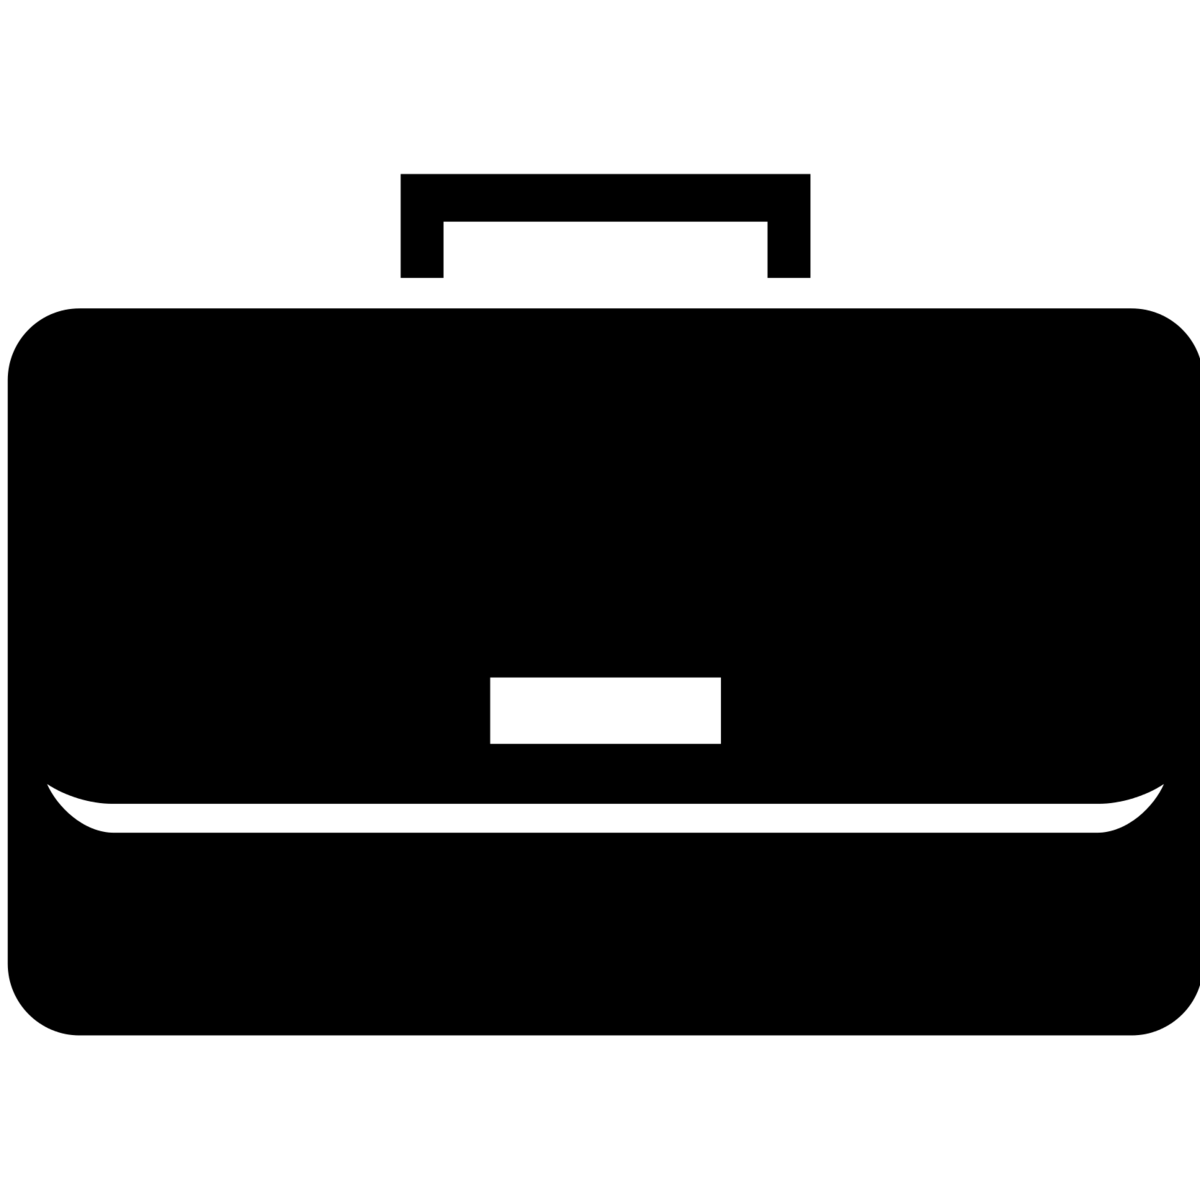 Business briefcase clipart.